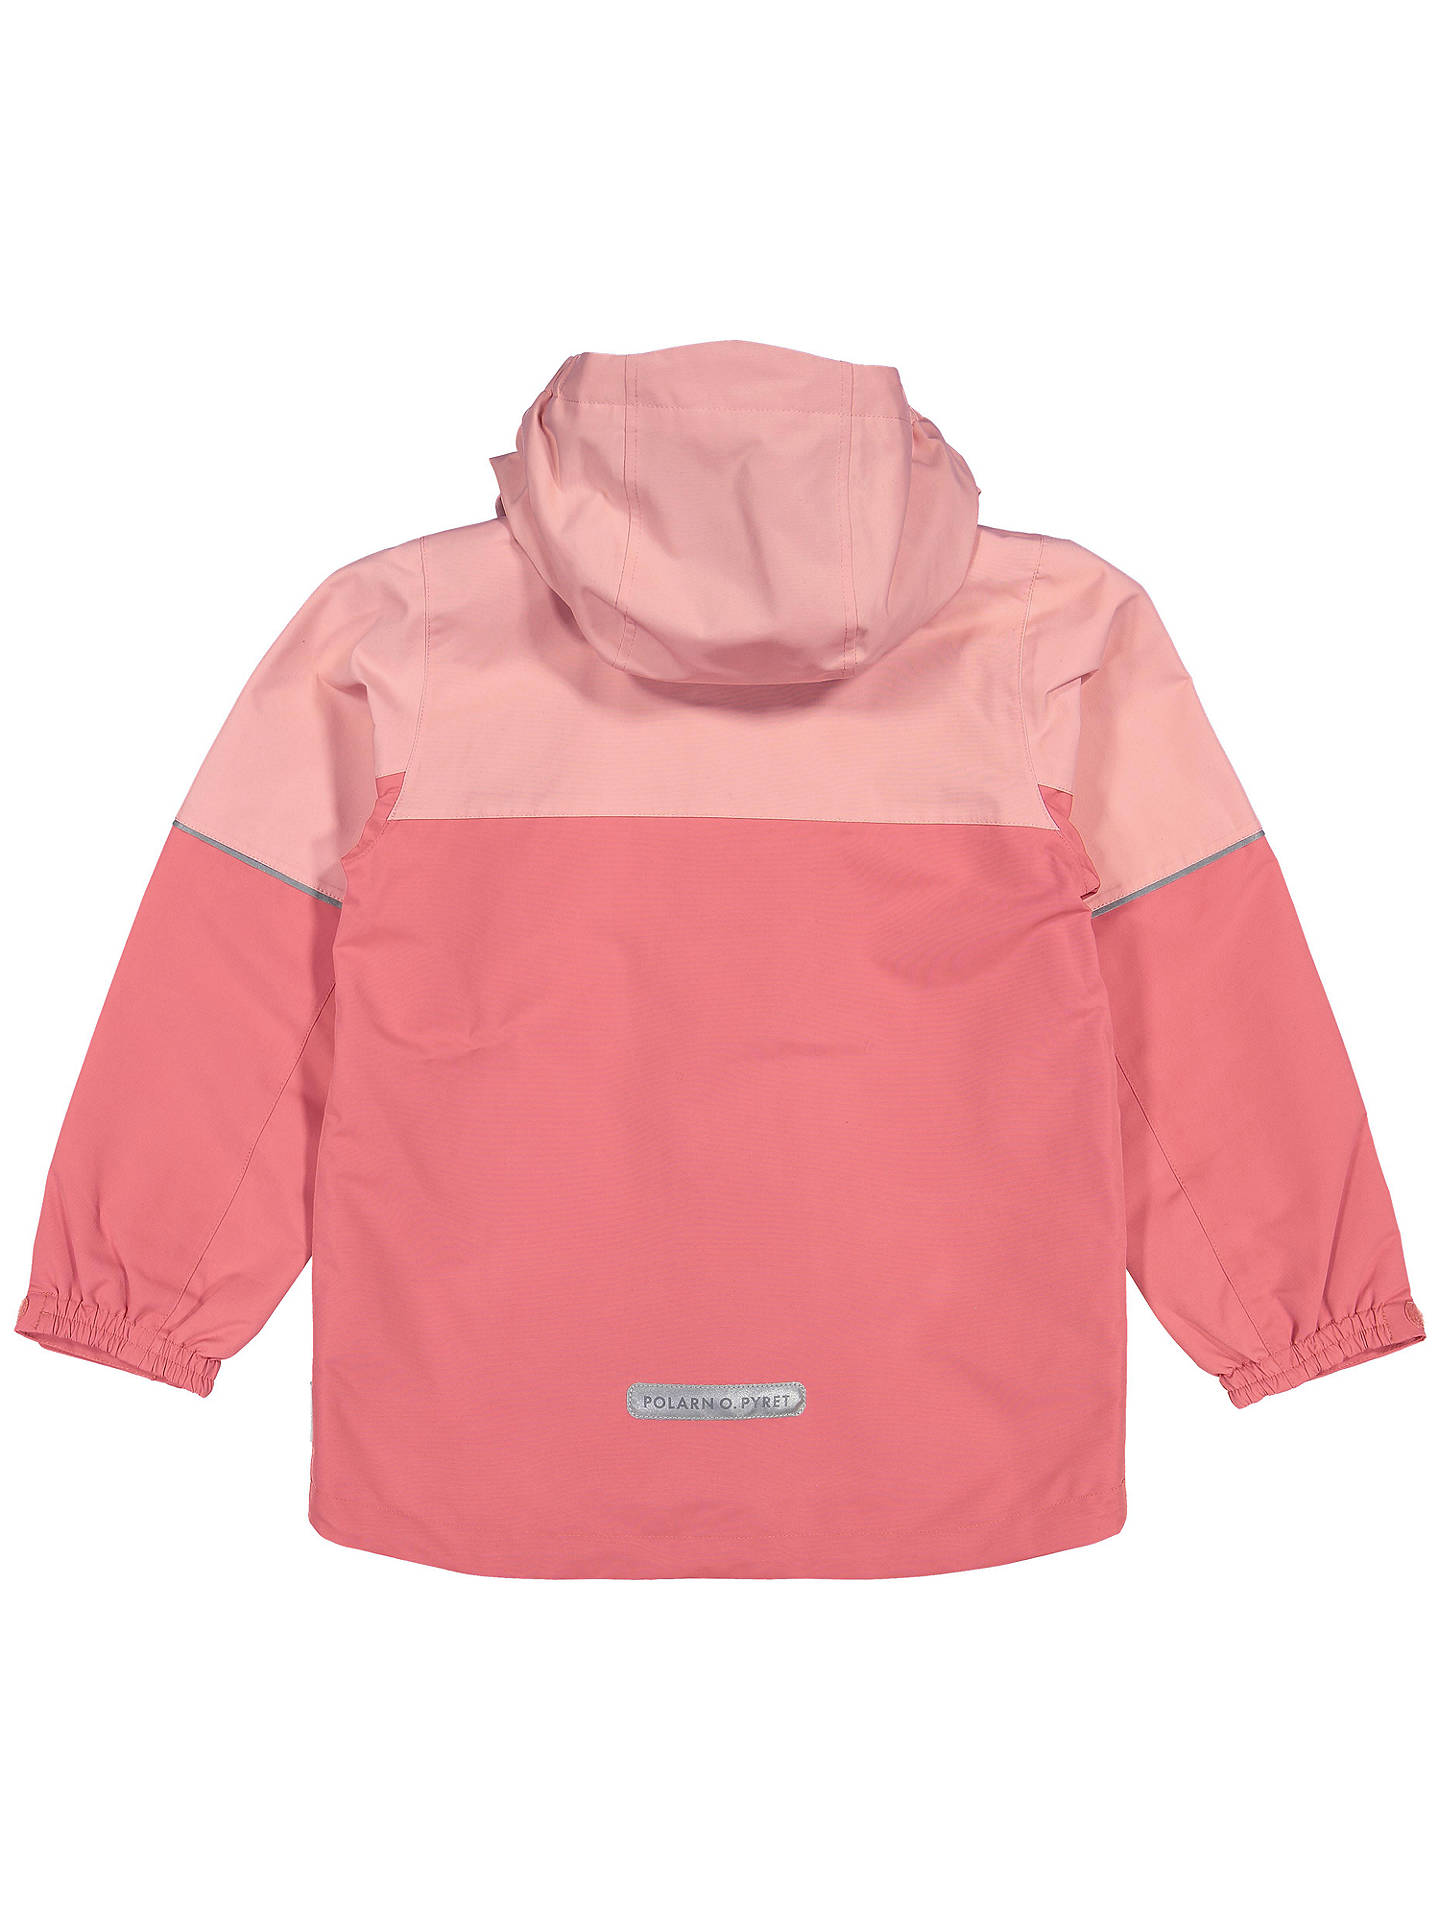 9cca73a8d Polarn O. Pyret Children s Waterproof Shell Coat